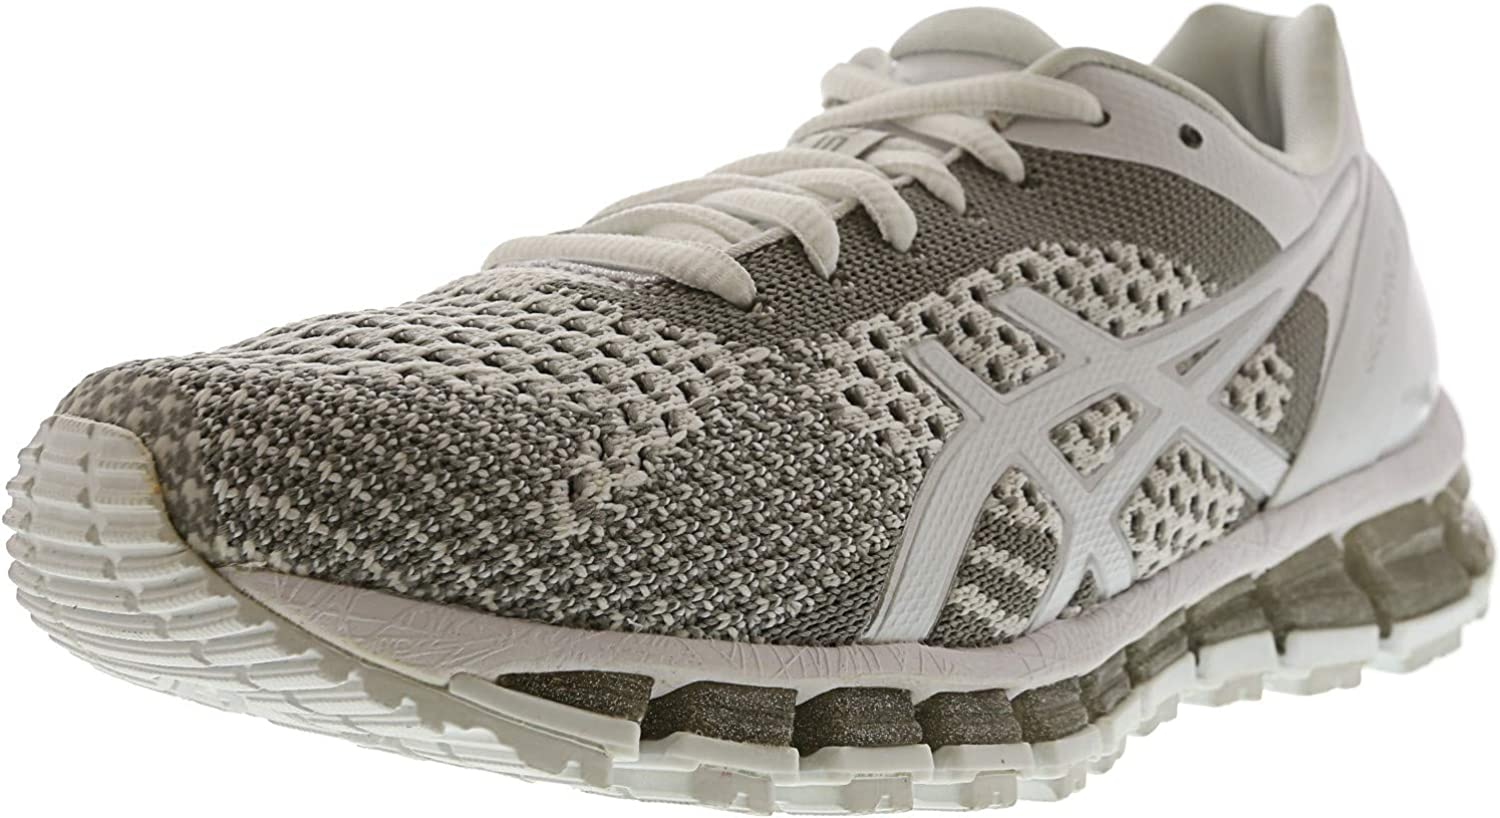 ASICS Women's GEL-Quantum 360 3 Running shoes,White Snow Silver,US 5 B